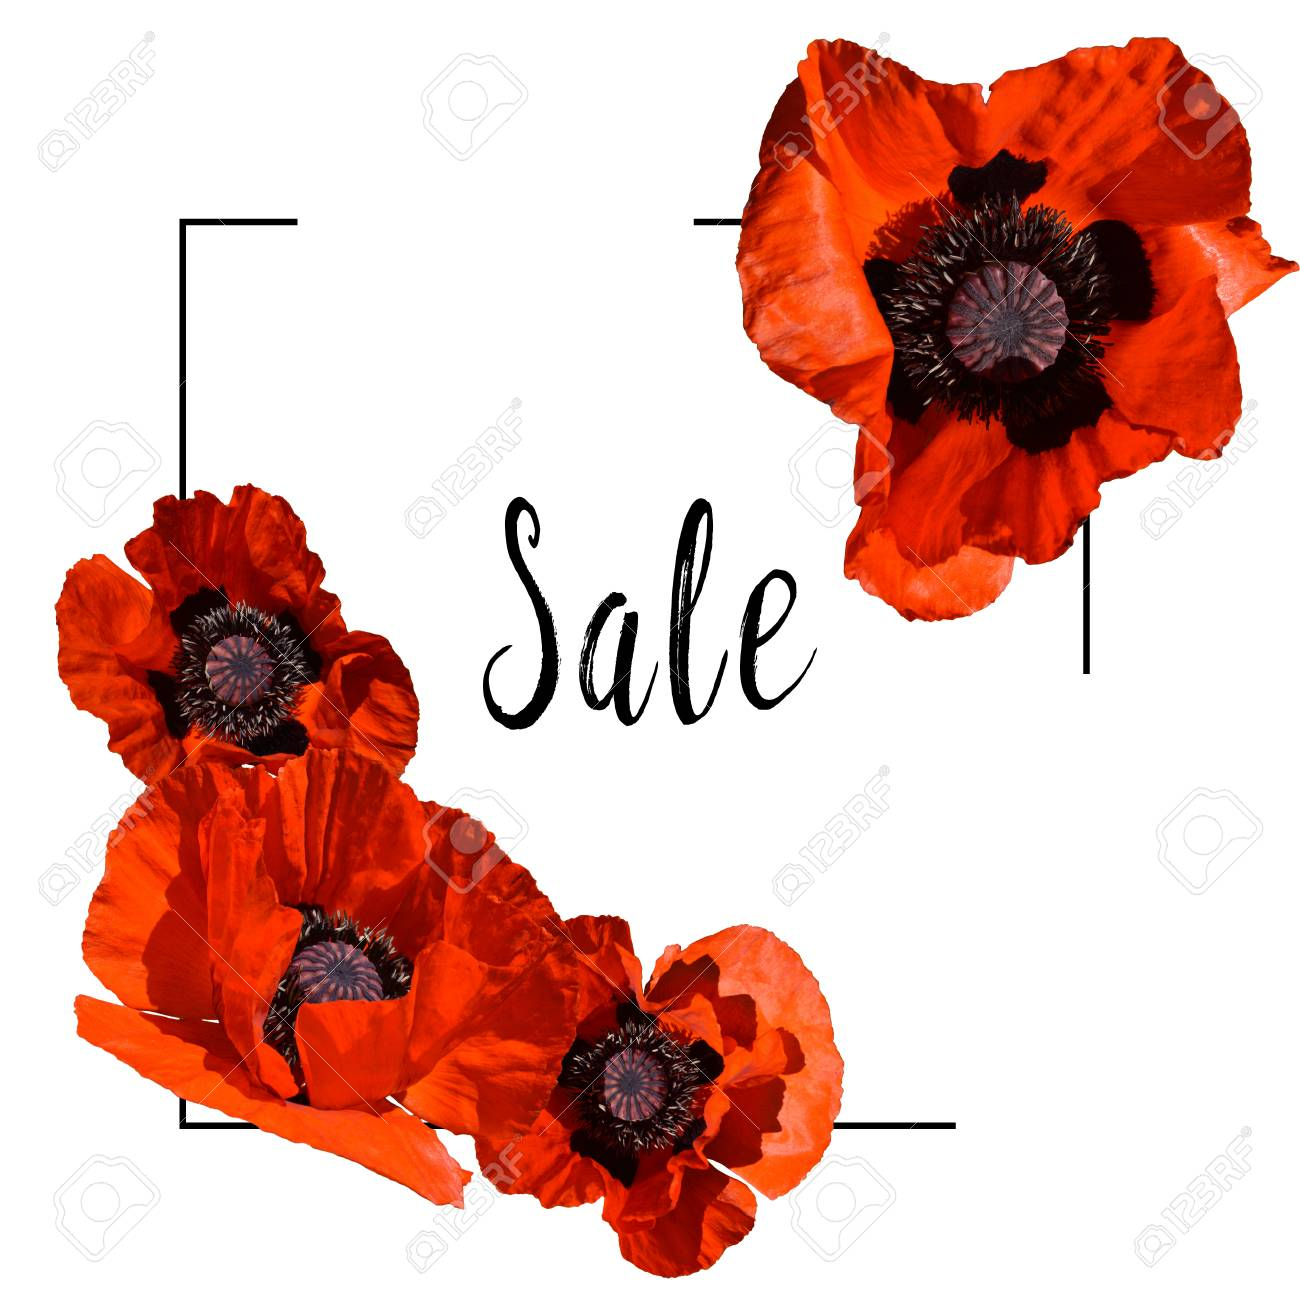 Square Sale Frame Decorated With Beautiful Red Poppies In Bloom